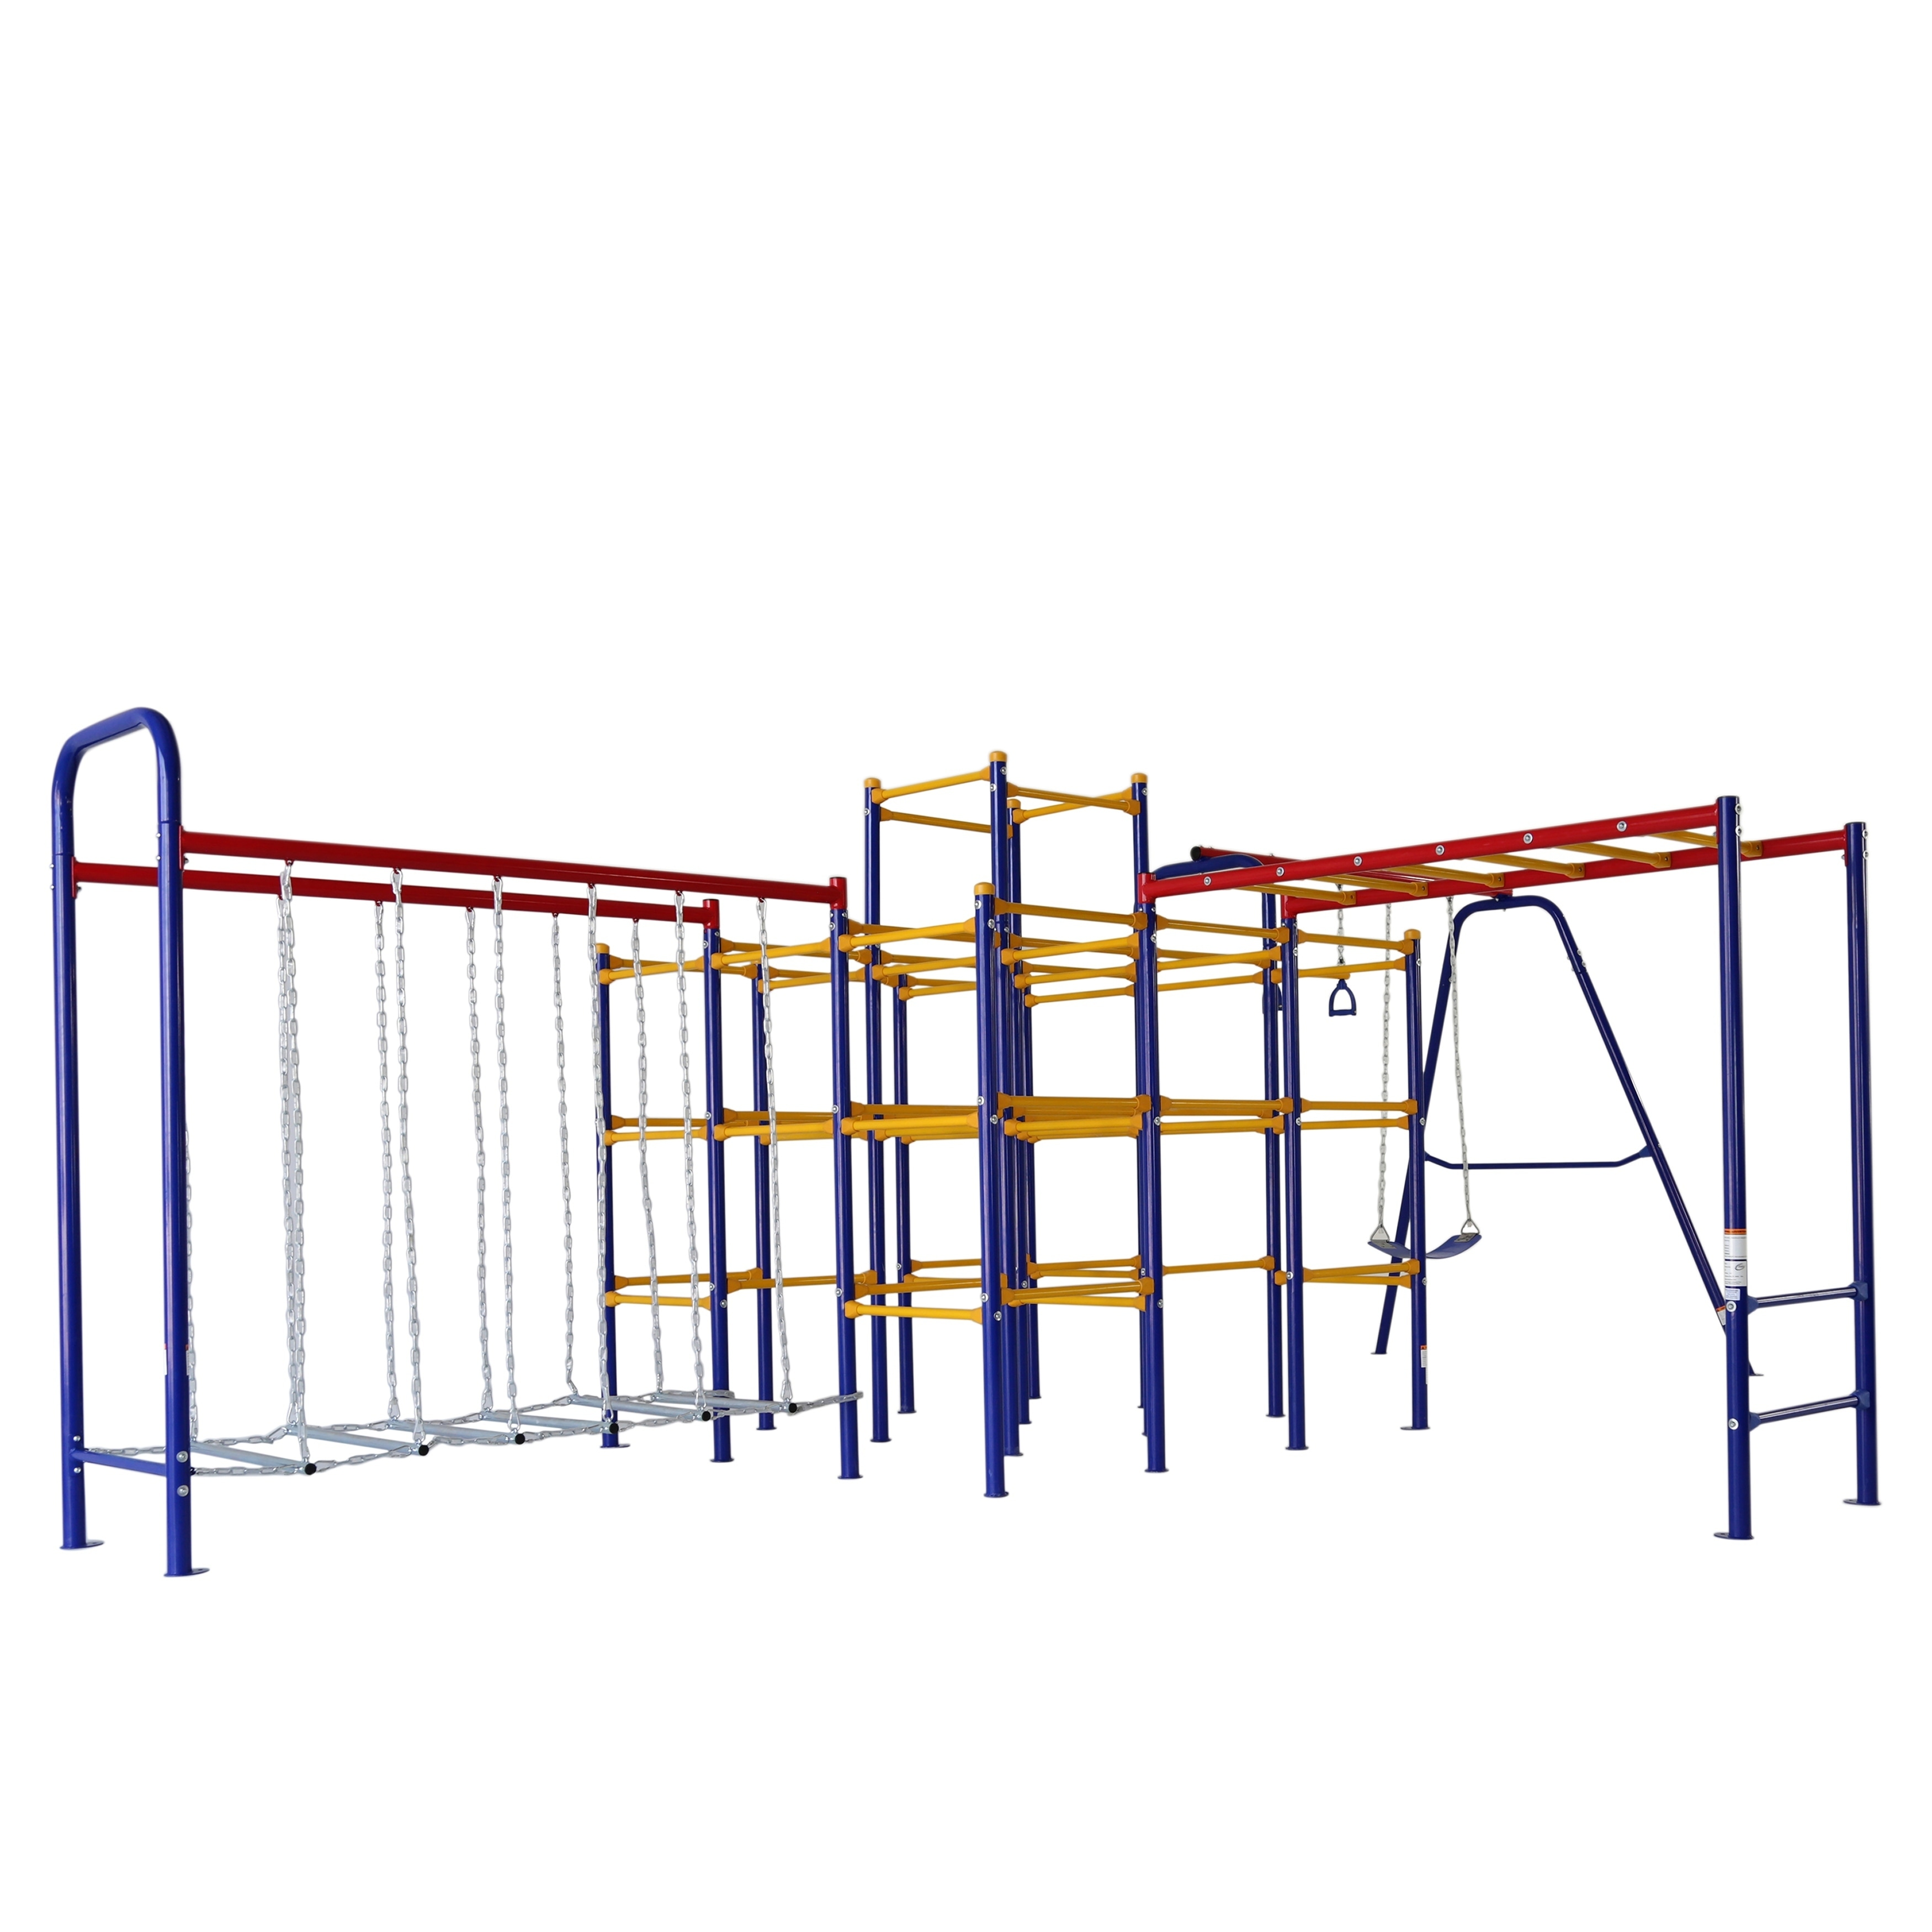 Skywalker Sports Modular Jungle Gym With Accessories Free Shipping Today 18127462